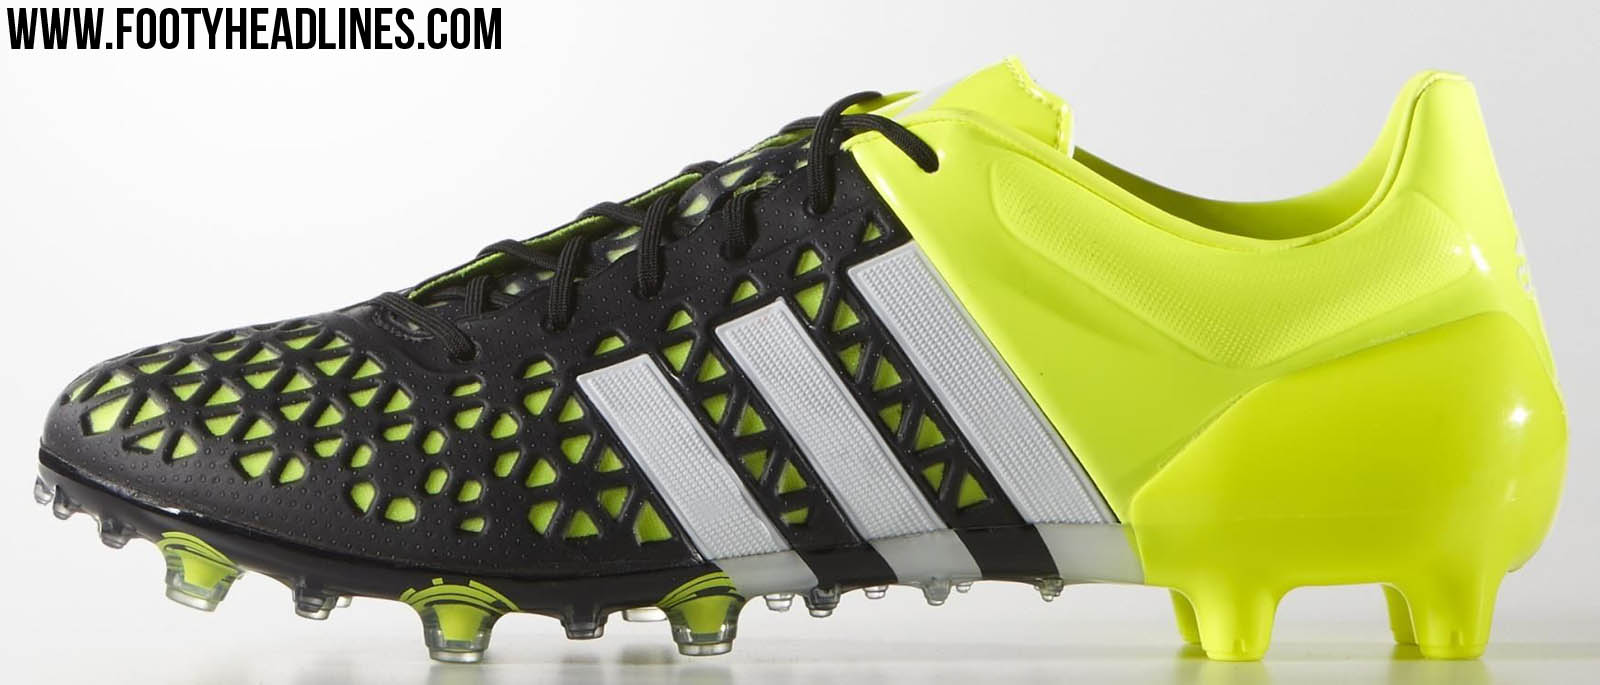 quality design b684c 5f658 adidas ace 5.1,soldes adidas ace 5.1,chaussures adidas ace ...